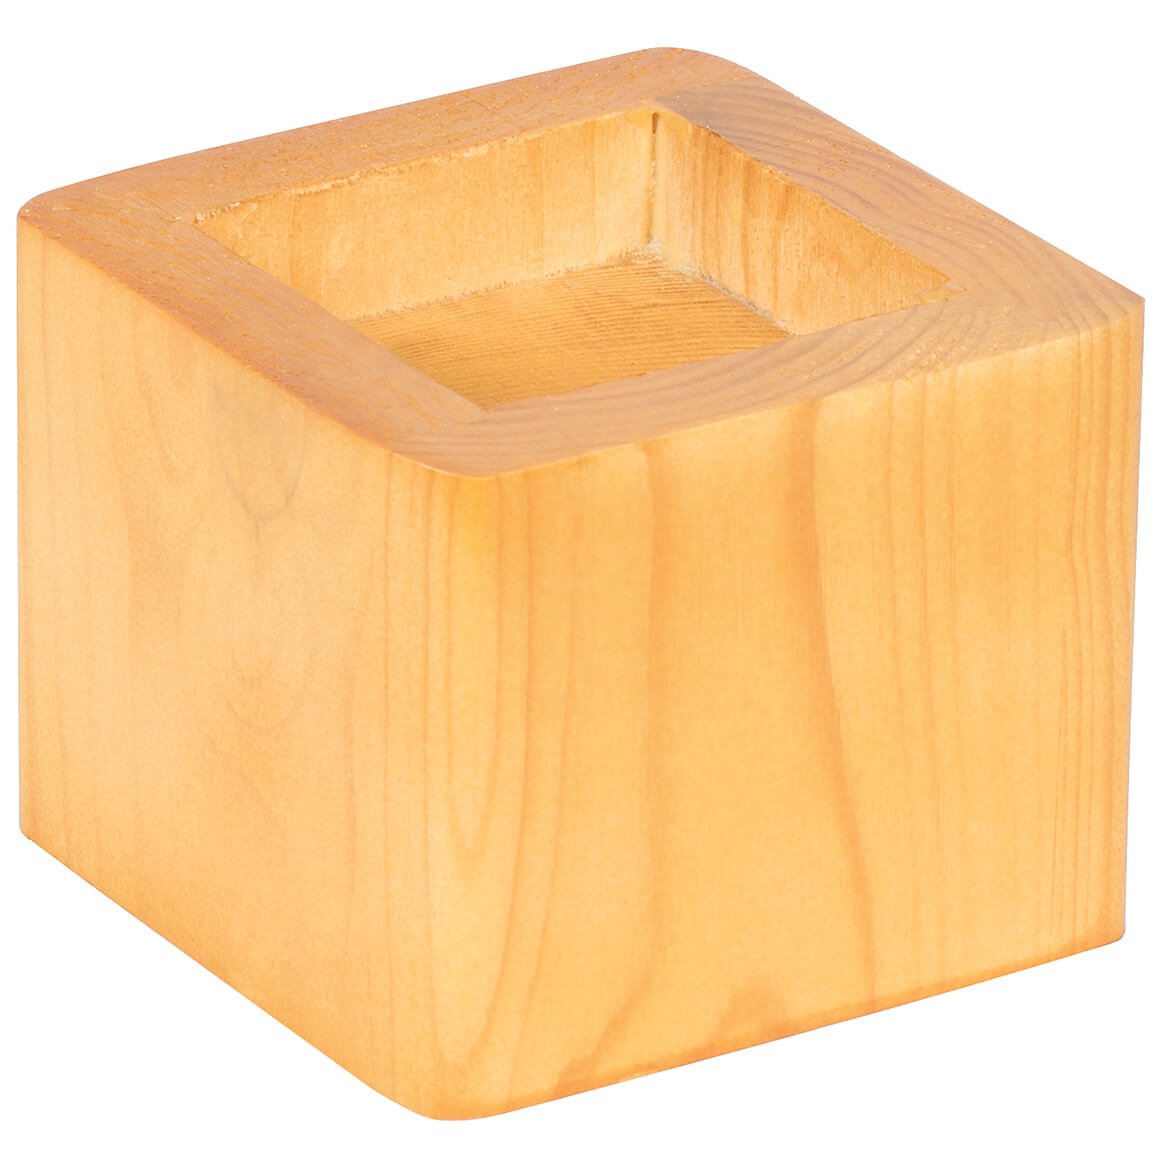 Wood Bed Risers Set of 4-308284